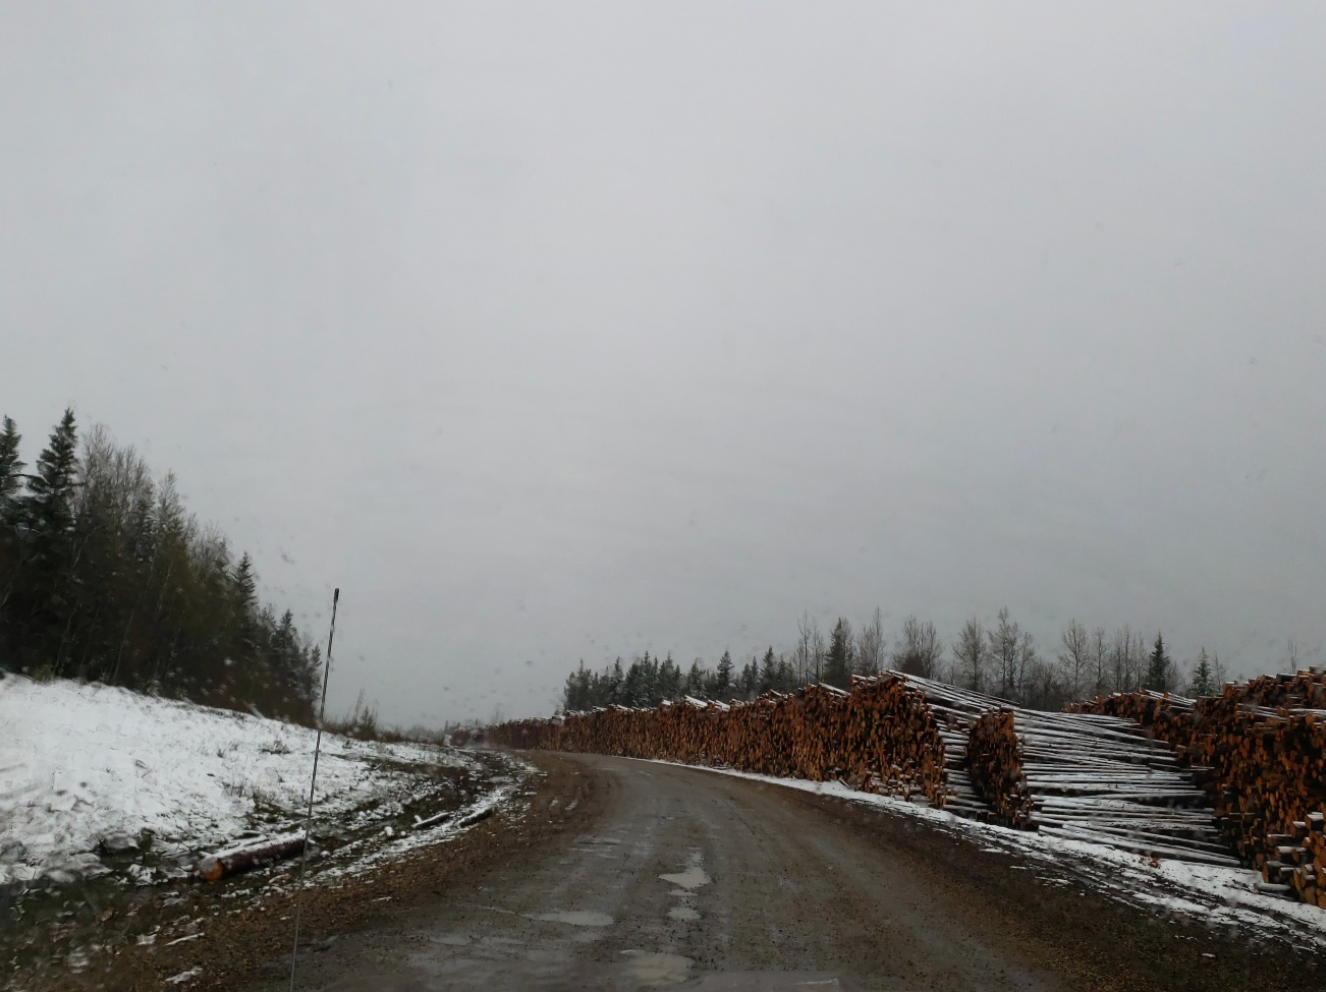 Dirt road, with evenly stacked logs on the side.